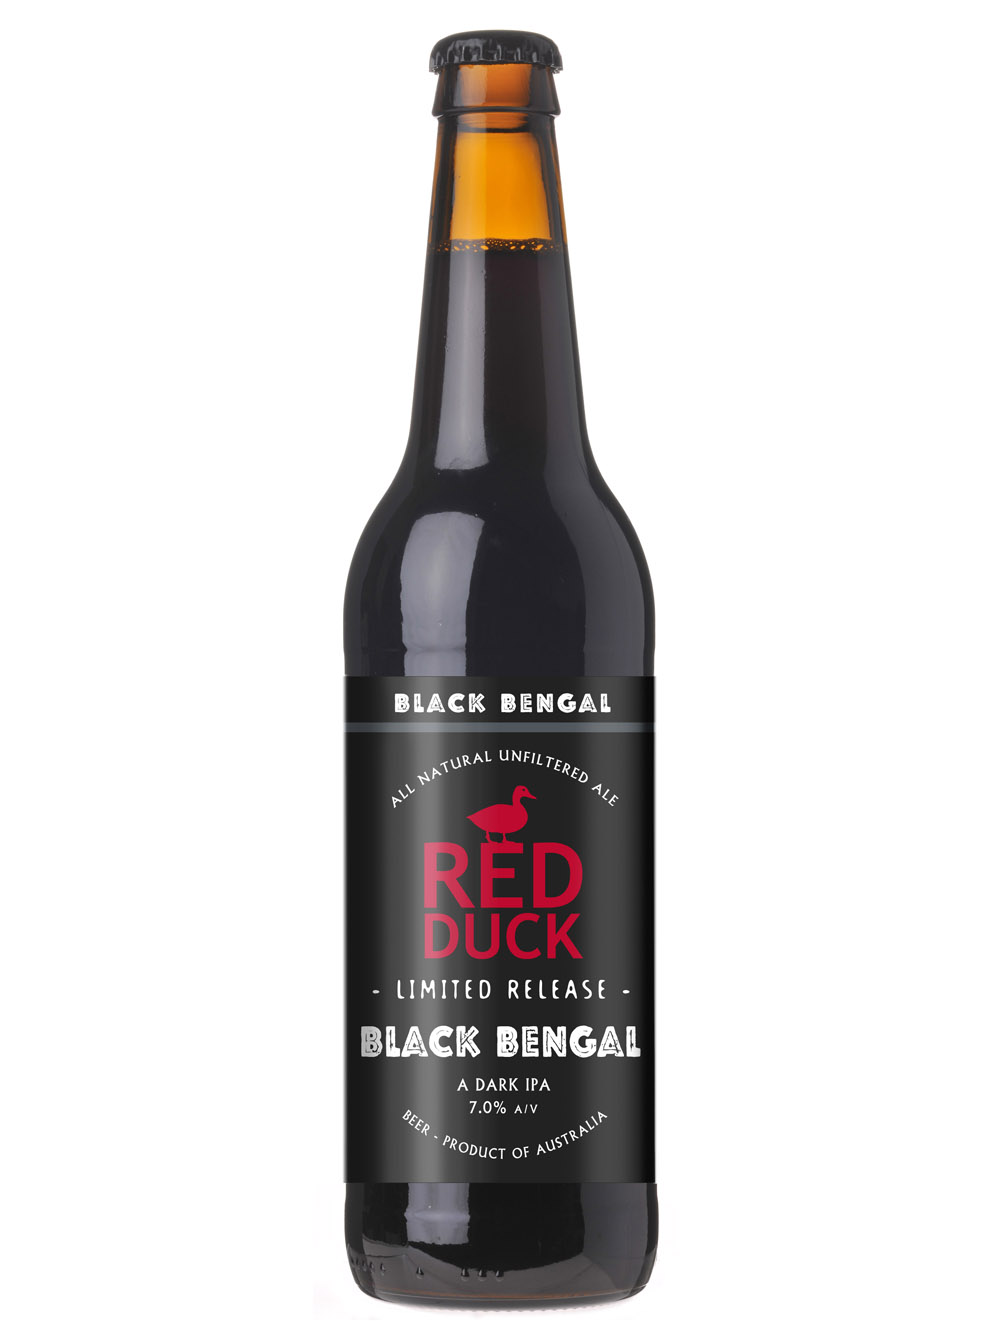 WEB black bengal bottle 500ml